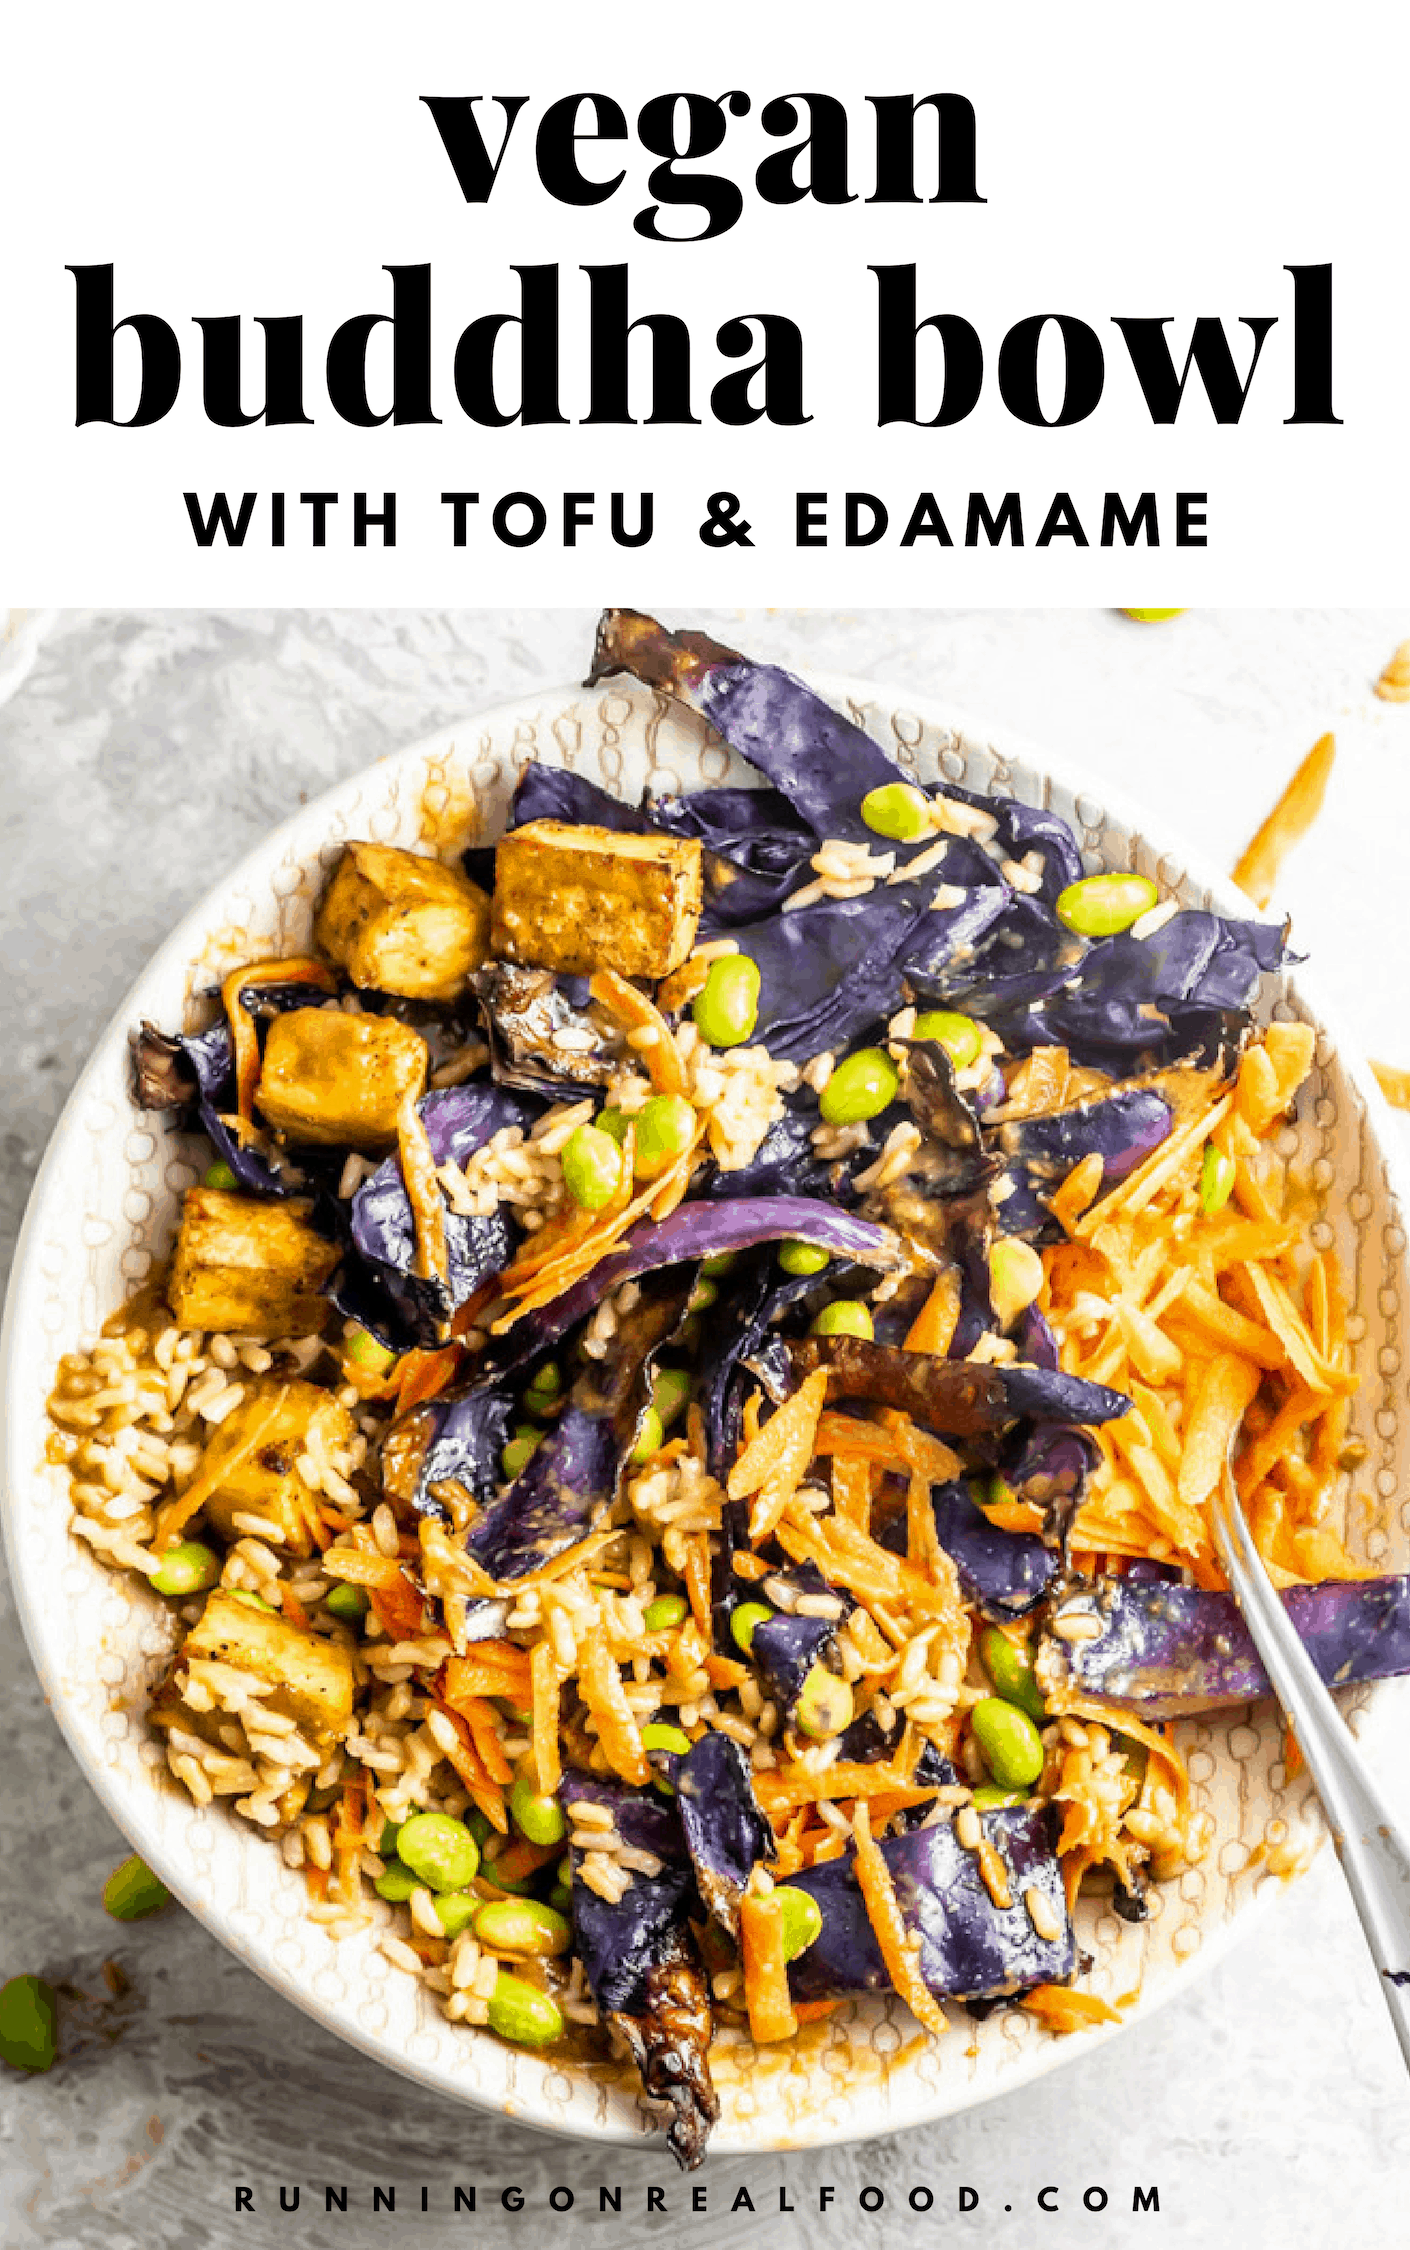 A healthy, filling vegan buddha bowl featuring tofu, edamame, brown rice, roasted cabbage, carrot and almond satay sauce.